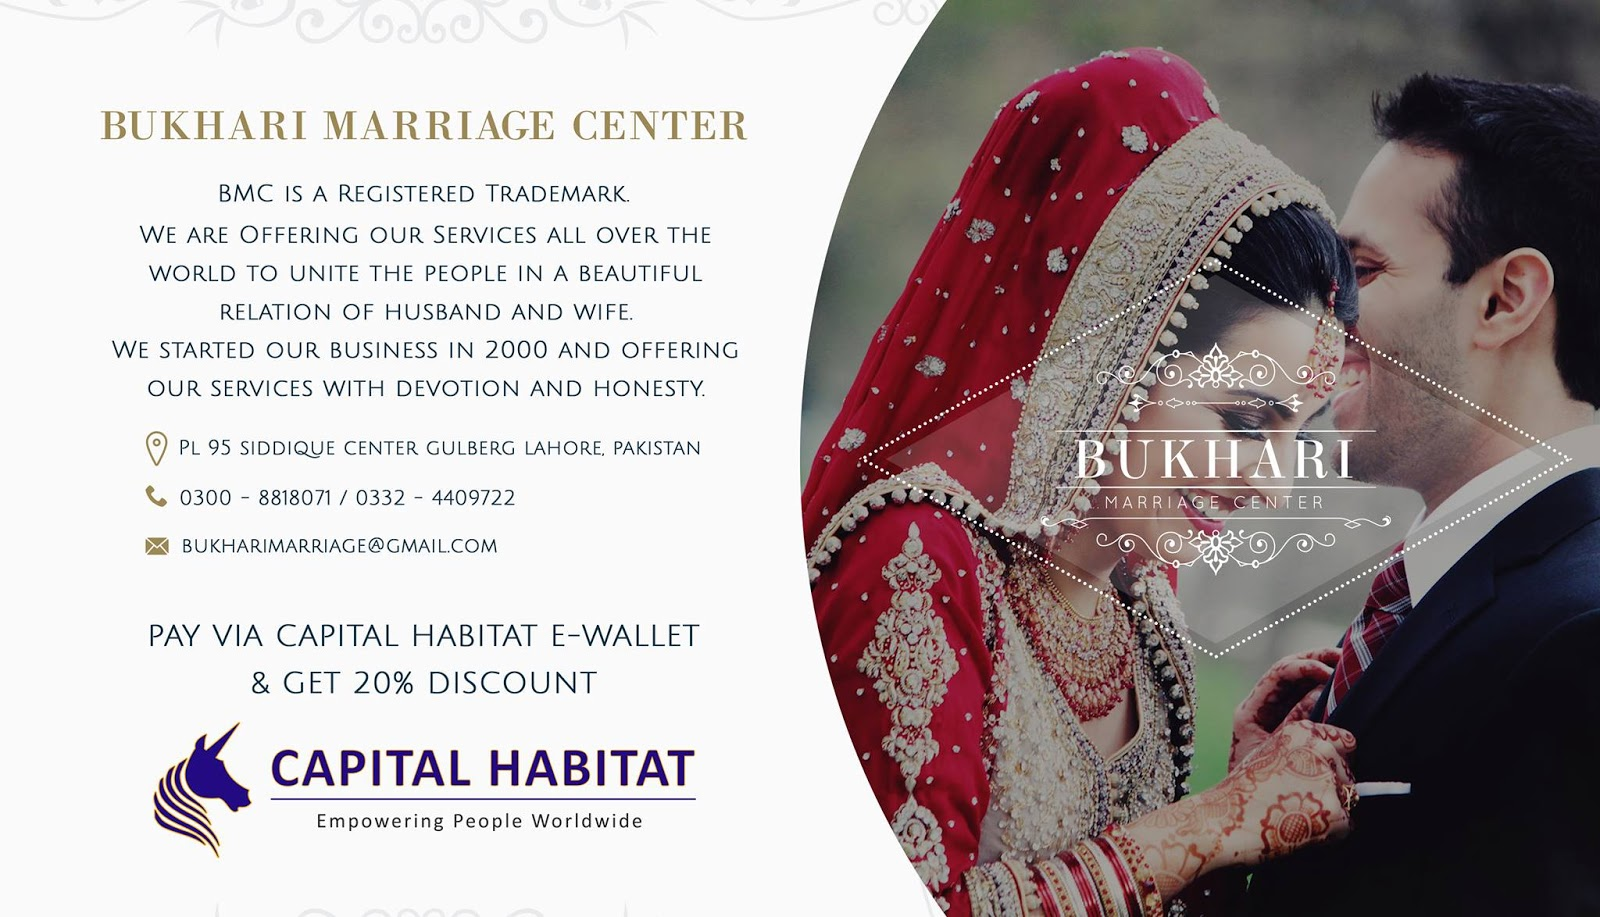 islamic marriage bureau USA pakistani Family 0027 ~ BUKHARI